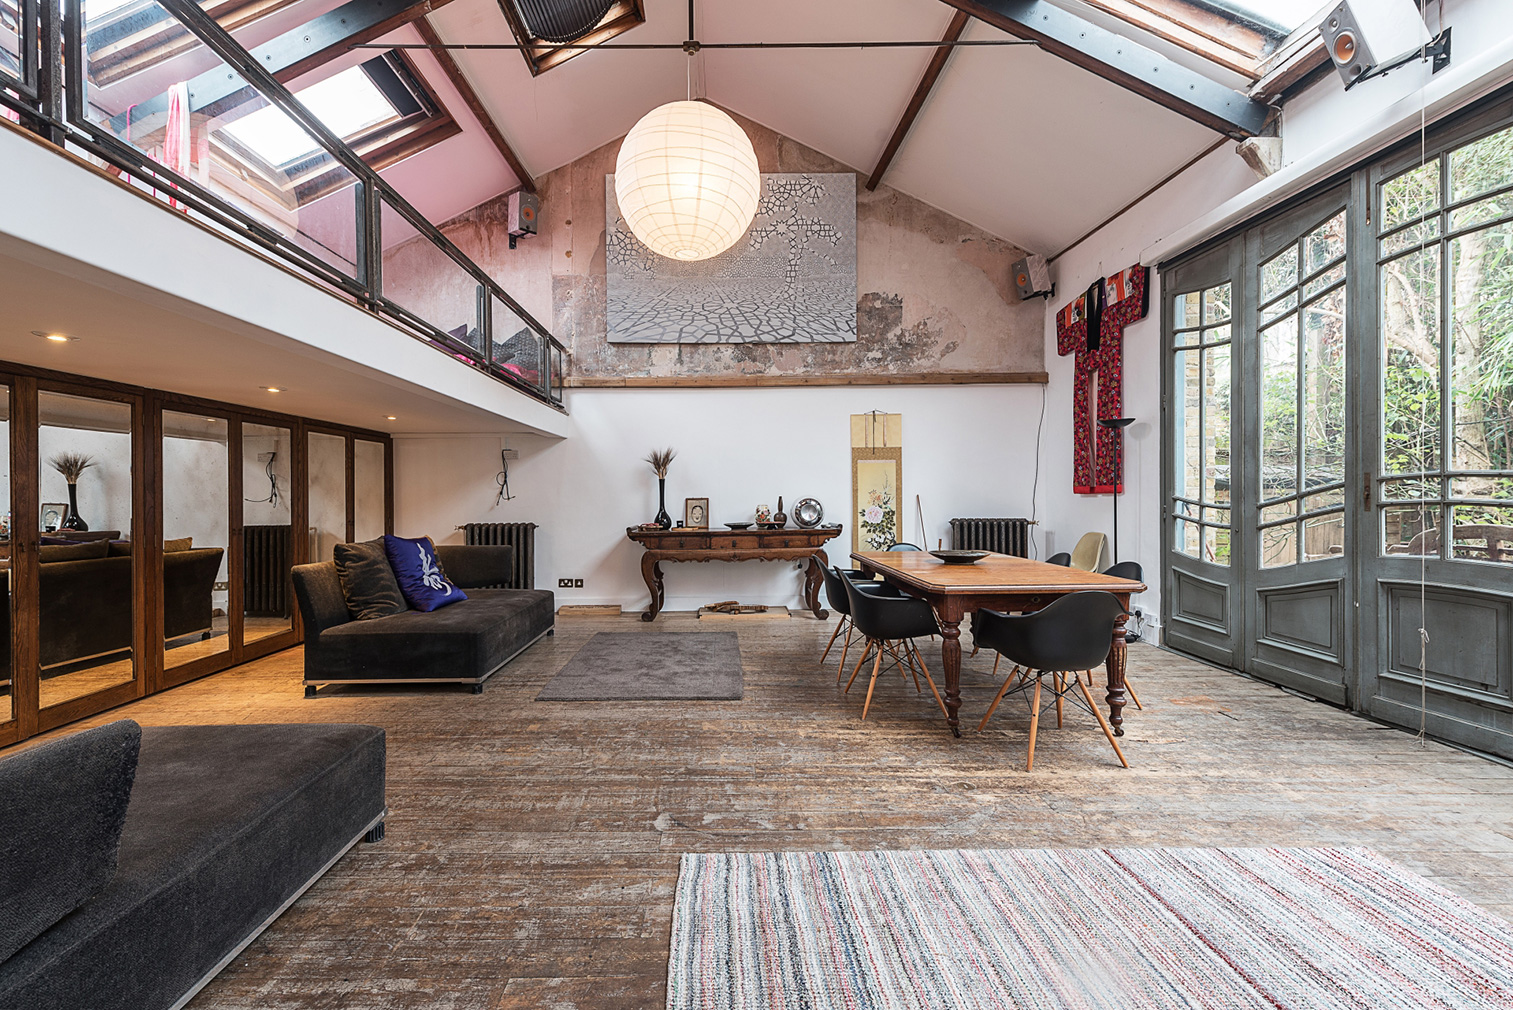 Vaulted Former Art Studio In London Asks 775 A Week New